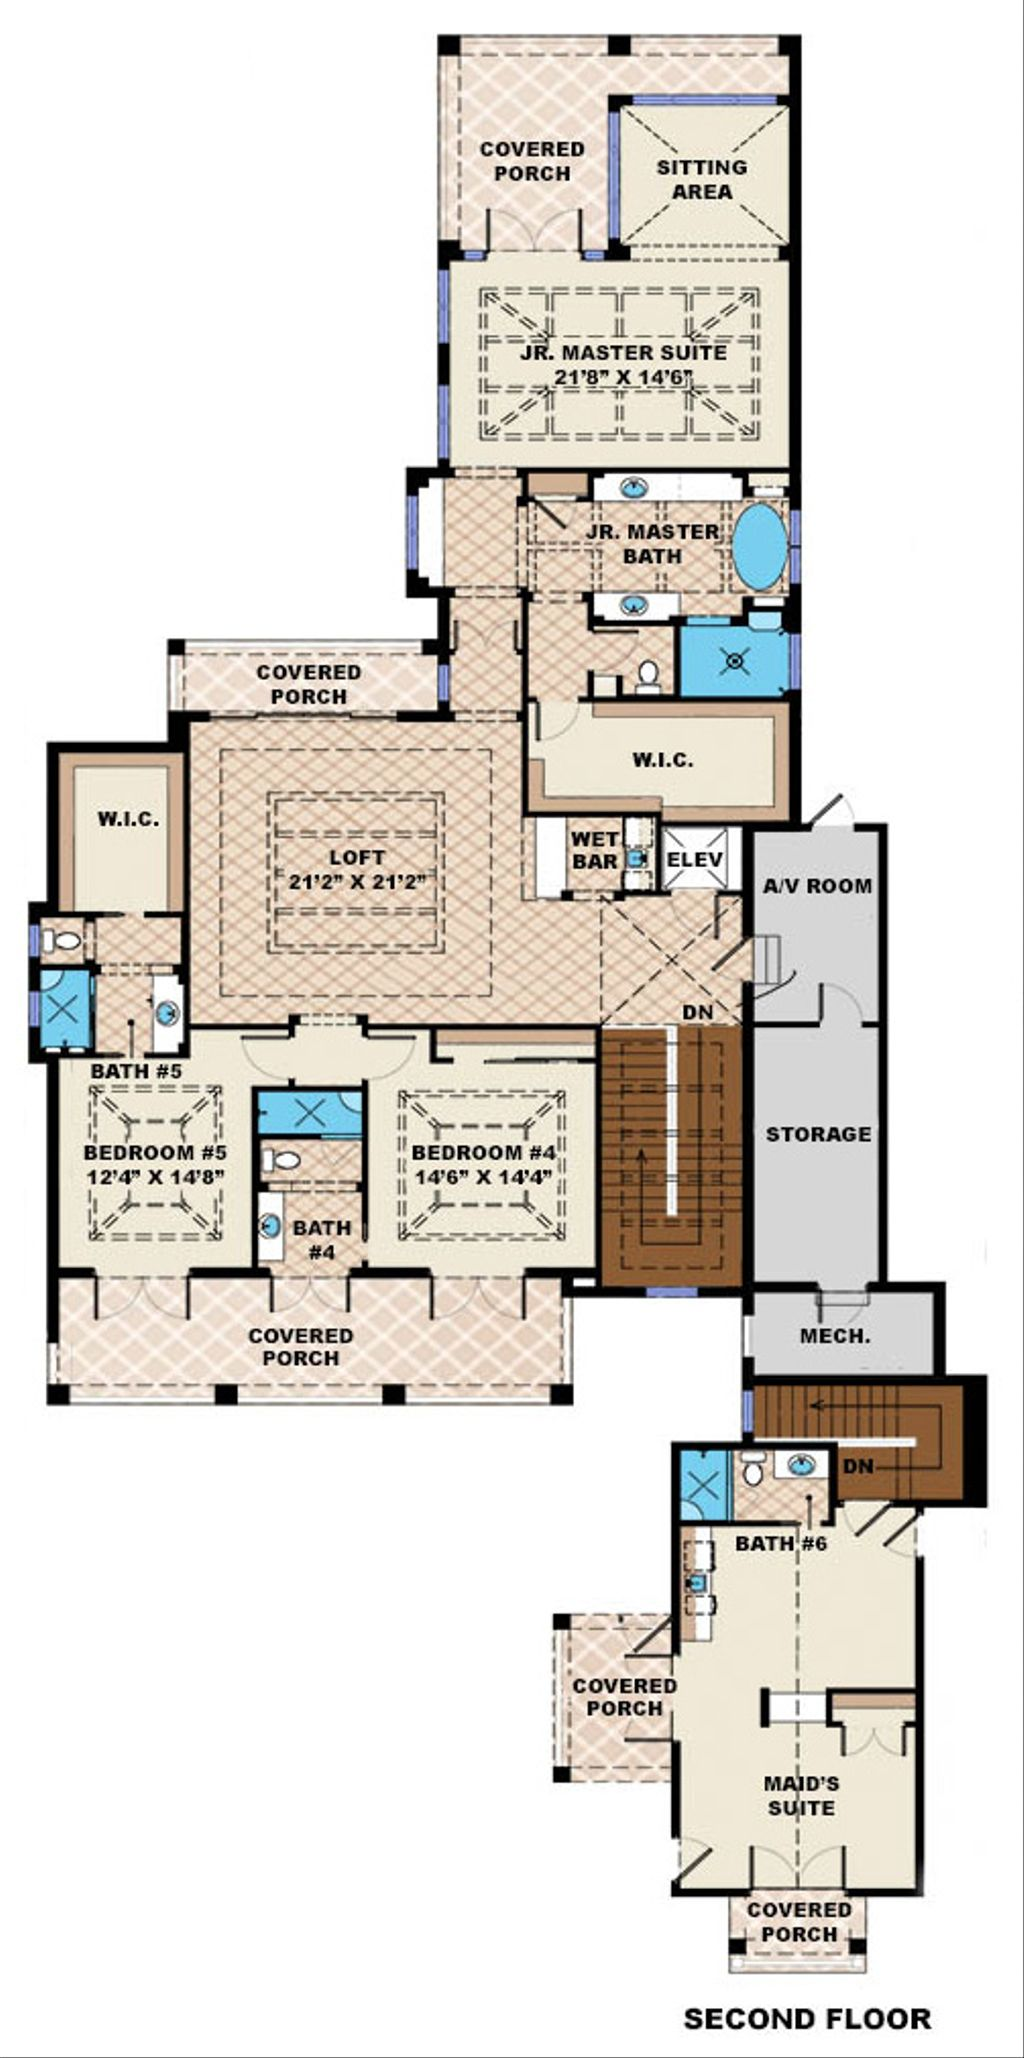 beach style house plan 6 beds 6 5 baths 10605 sq ft plan 27 462 rh houseplans com 6 bedroom house plans australia 6 bedroom house plans nz